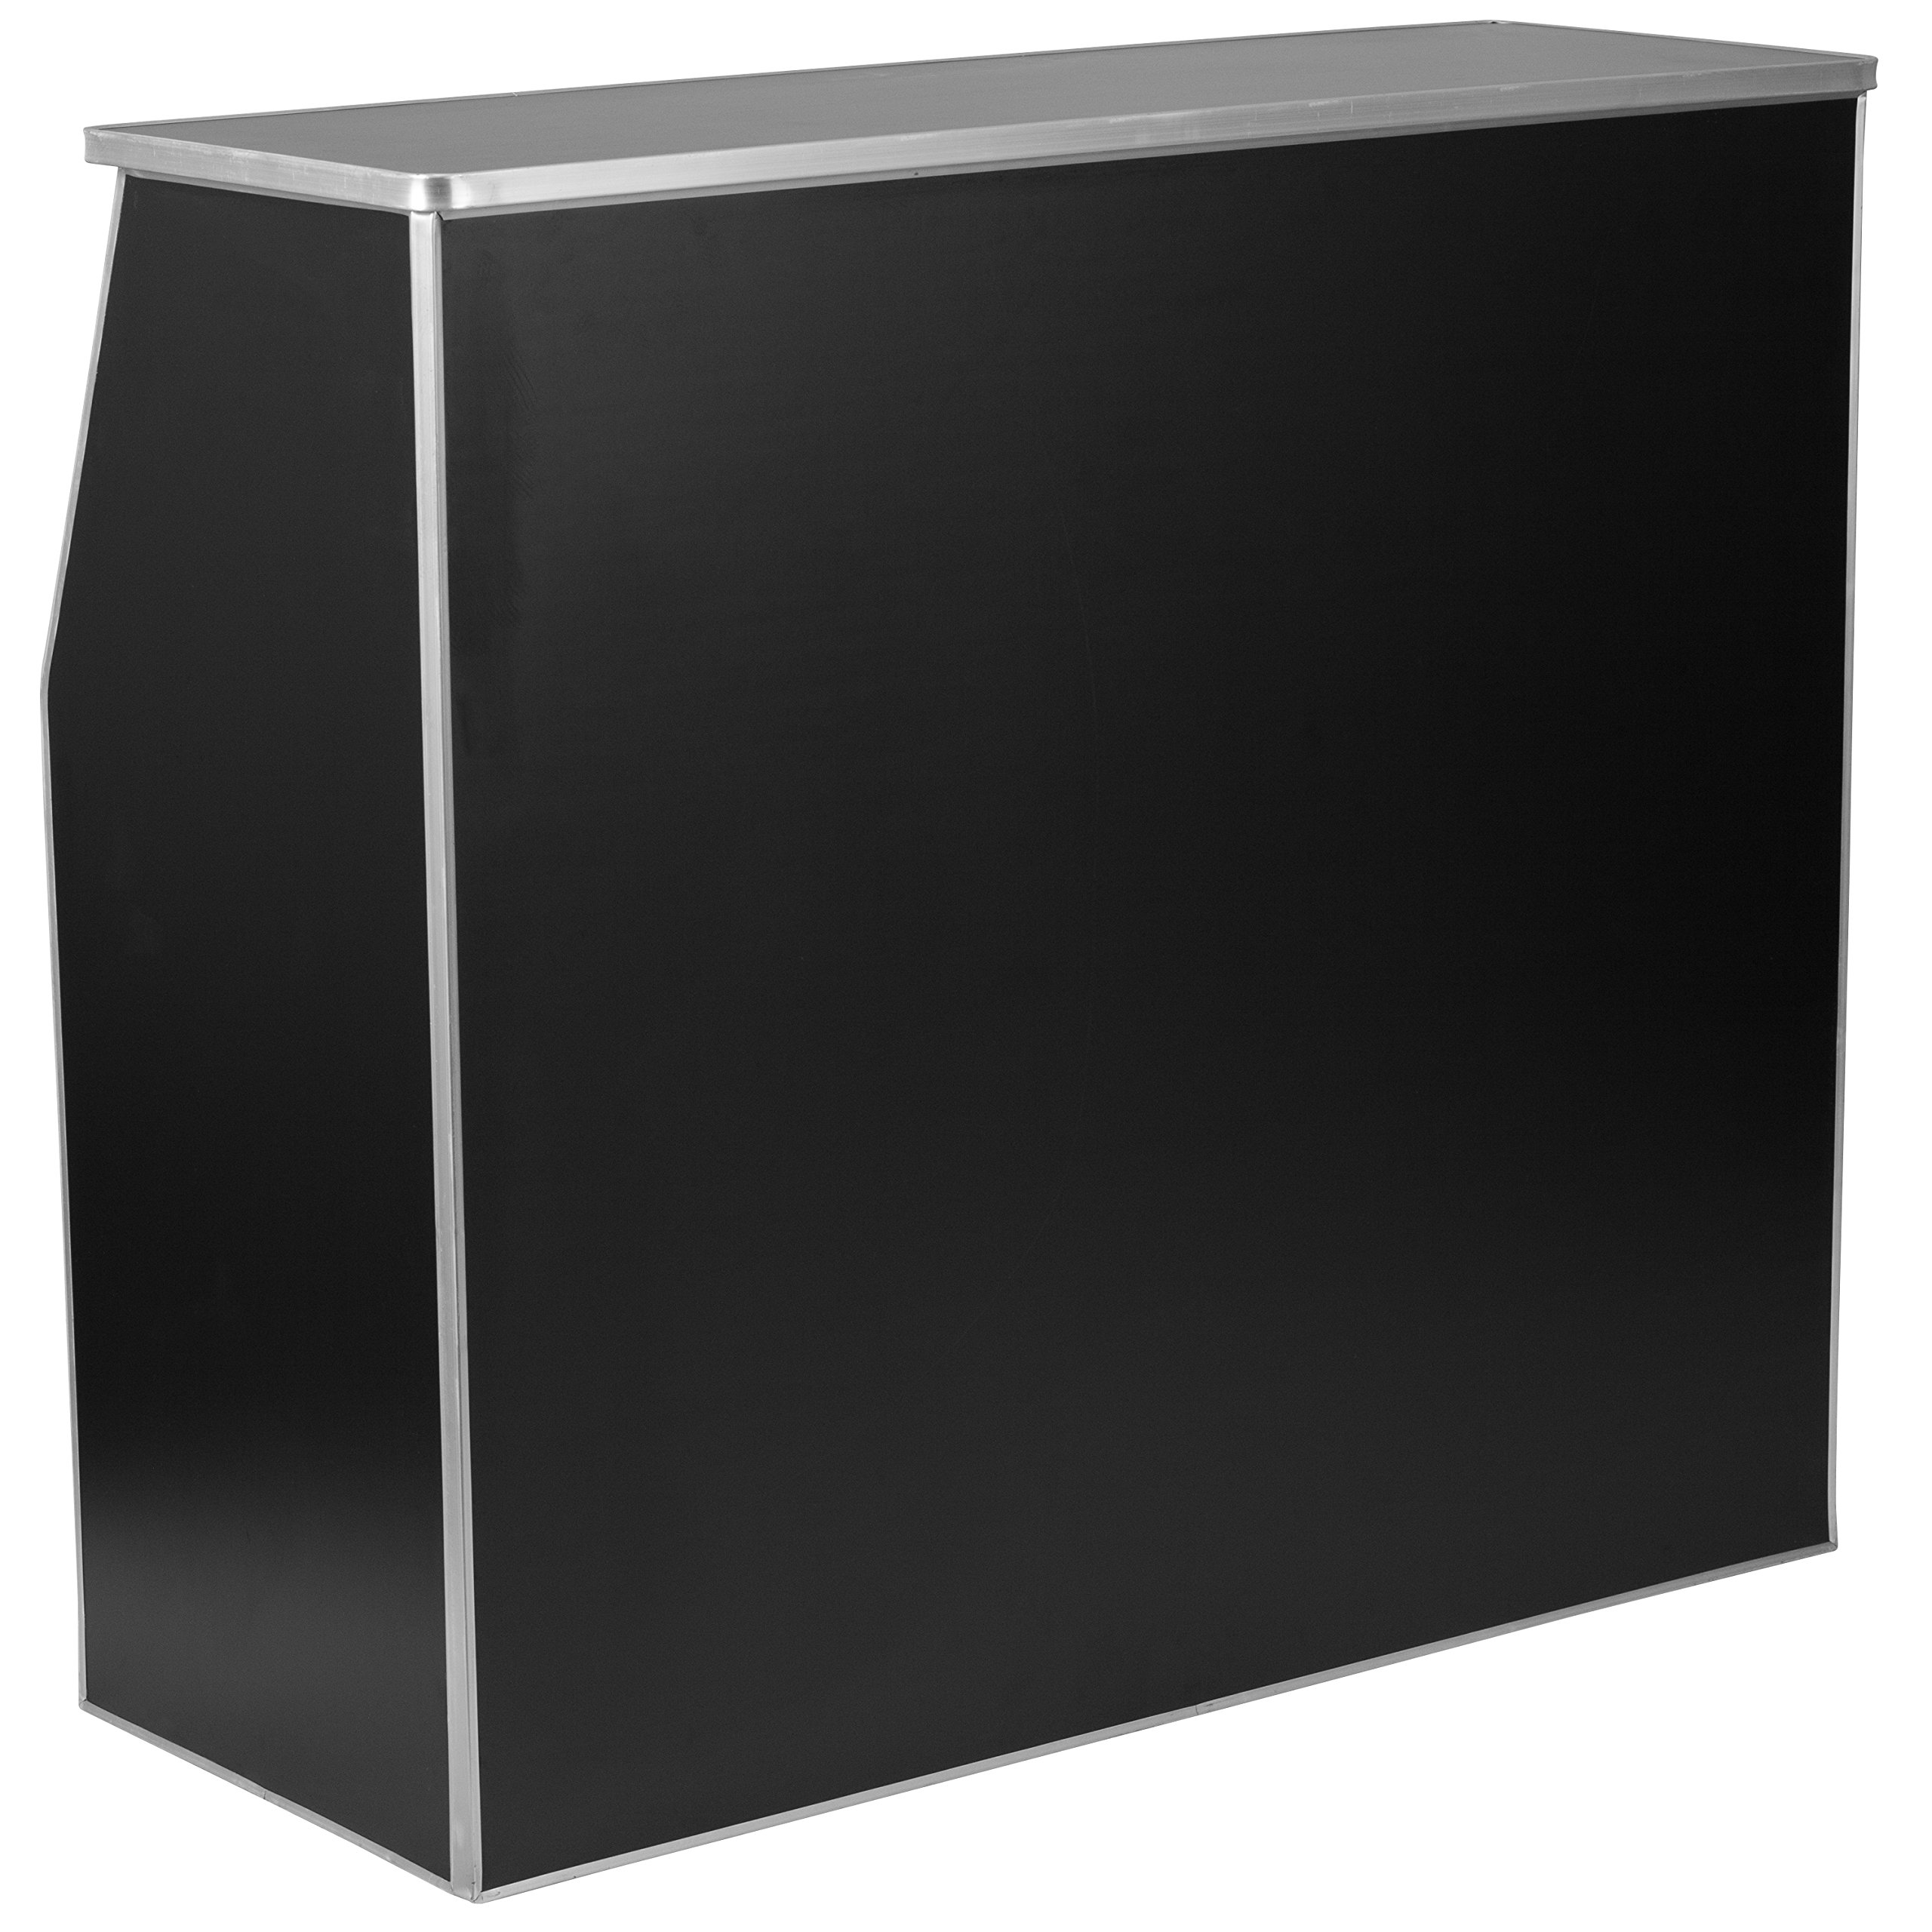 Flash Furniture 4' Black Laminate Foldable Bar by Flash Furniture